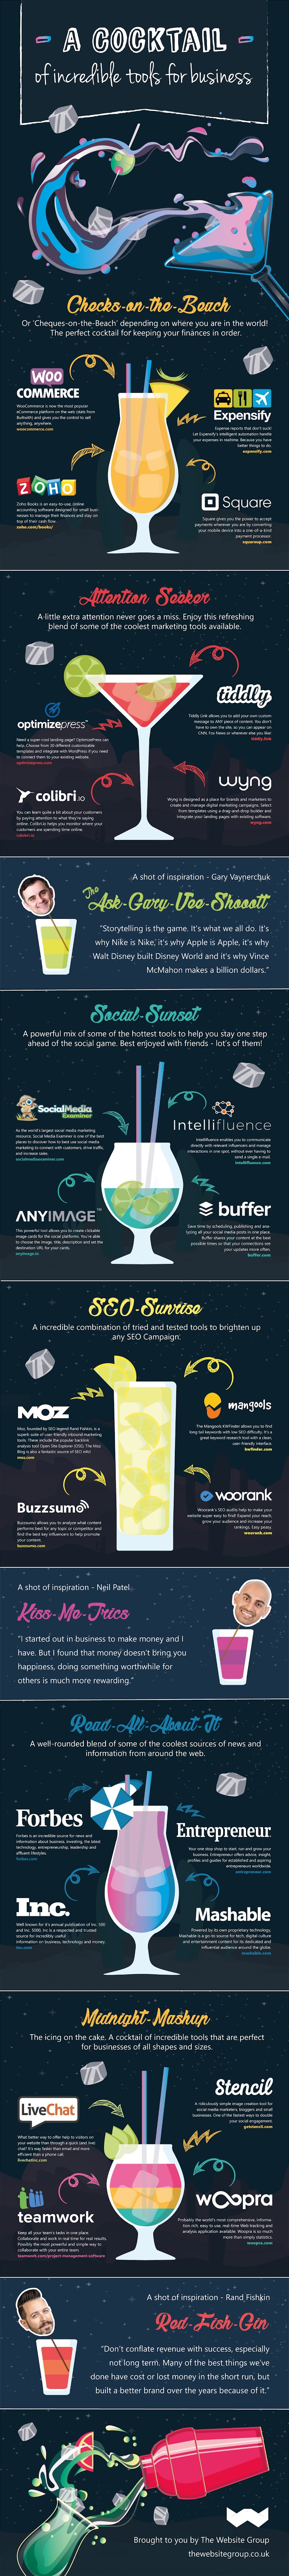 A Cocktail of Incredible Tools for Business! [Infographic]